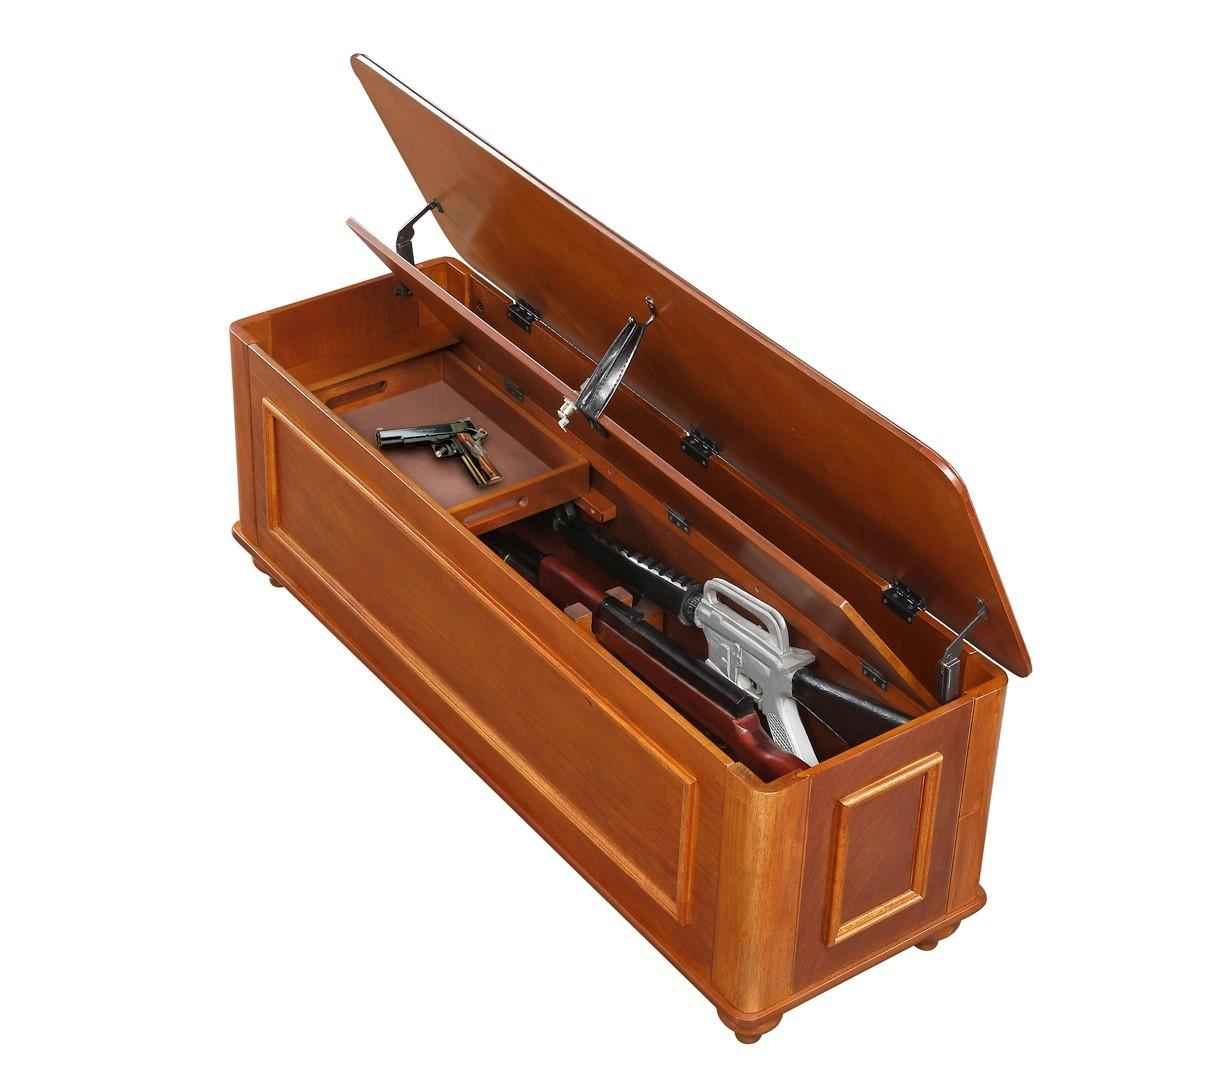 Guns On Kitchen Table: Amazon.com: American Furniture Classics Hope Chest With